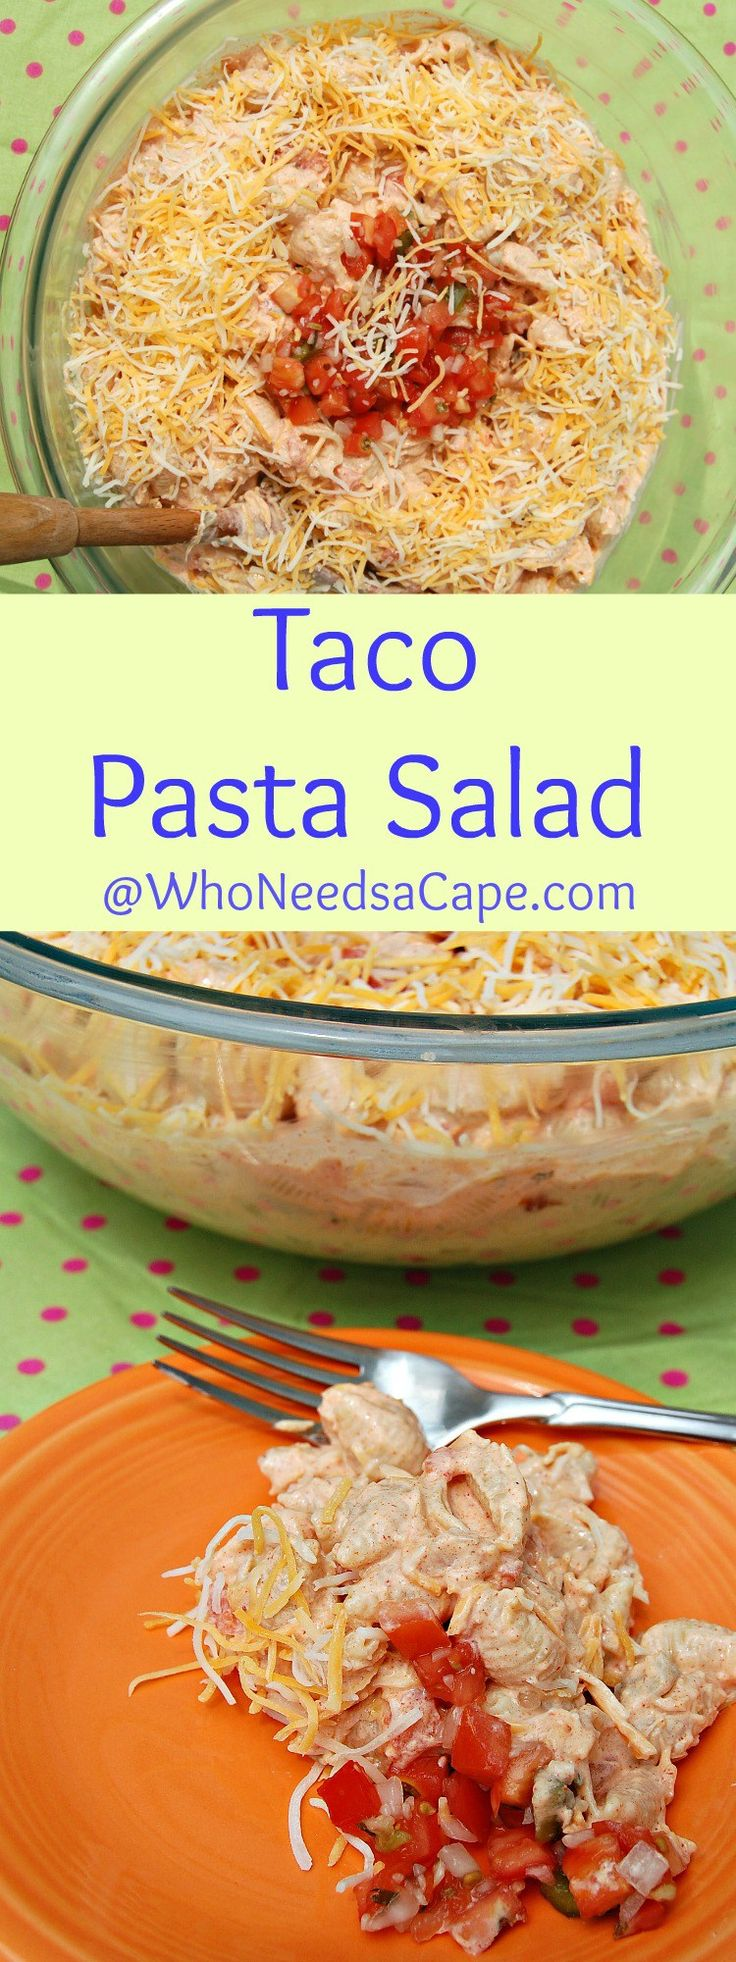 Taco Pasta Salad is a really fun twist on Pasta Salad! Have Taco night in a whole new way! Who Needs a Cape